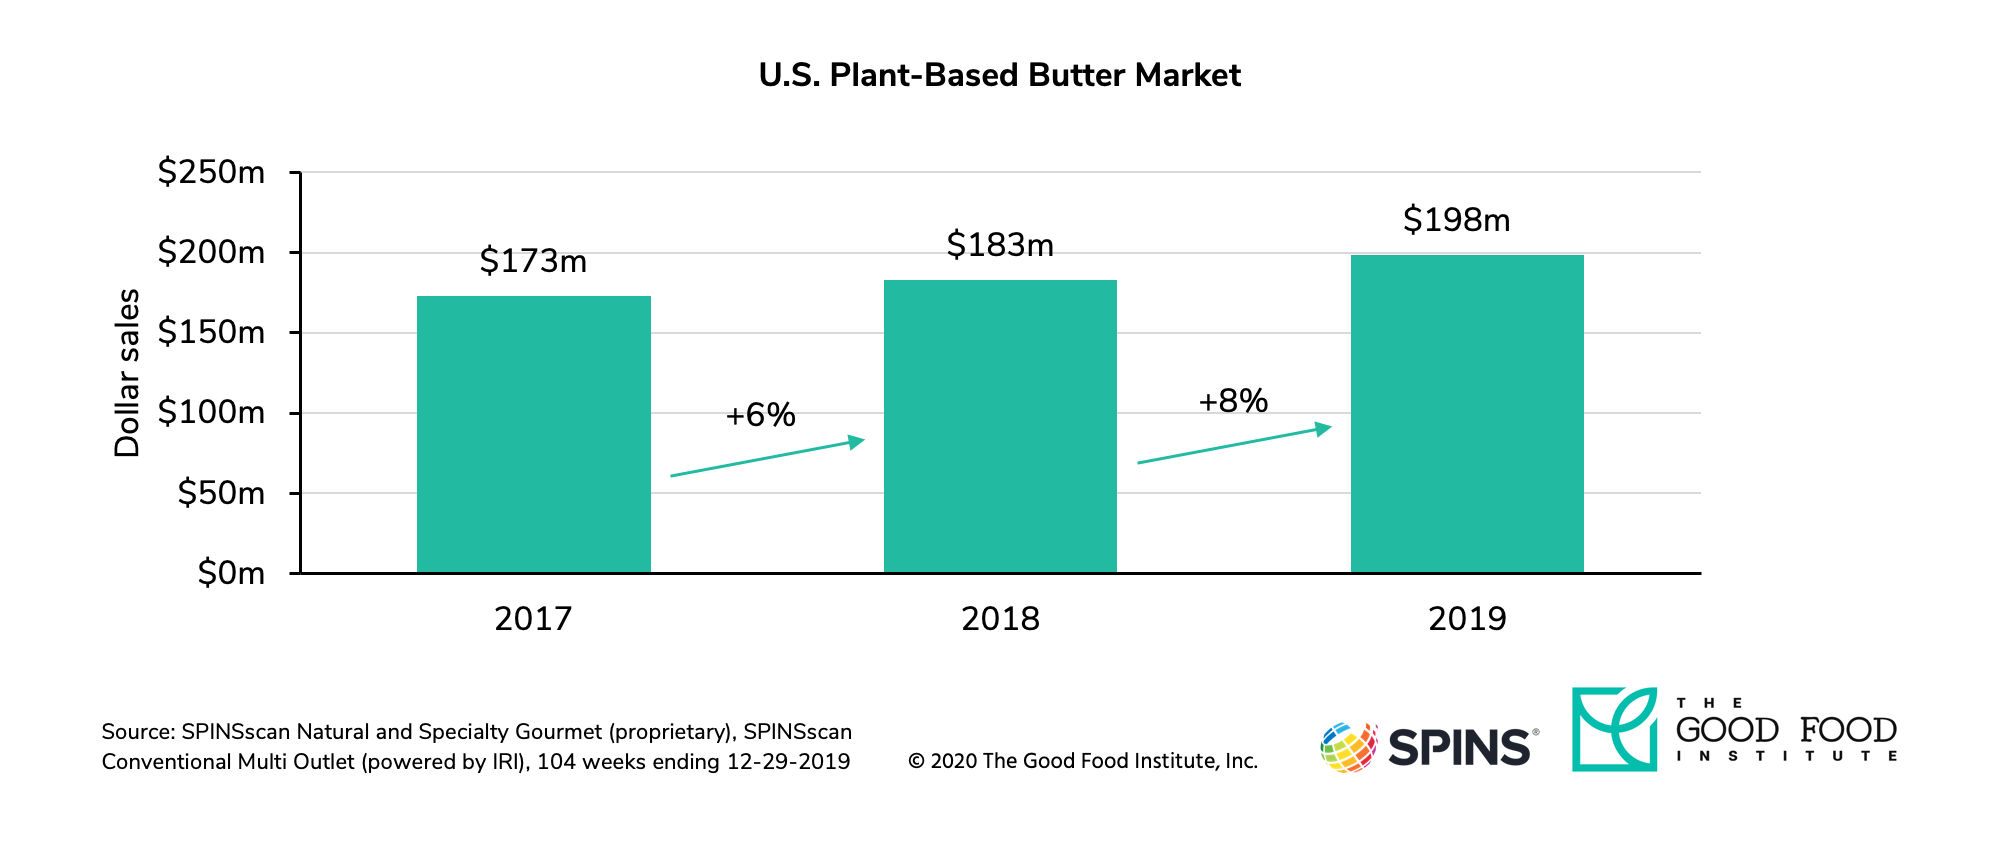 U.S. retail sales of dairy-free butter increased 8 percent in 2019.a